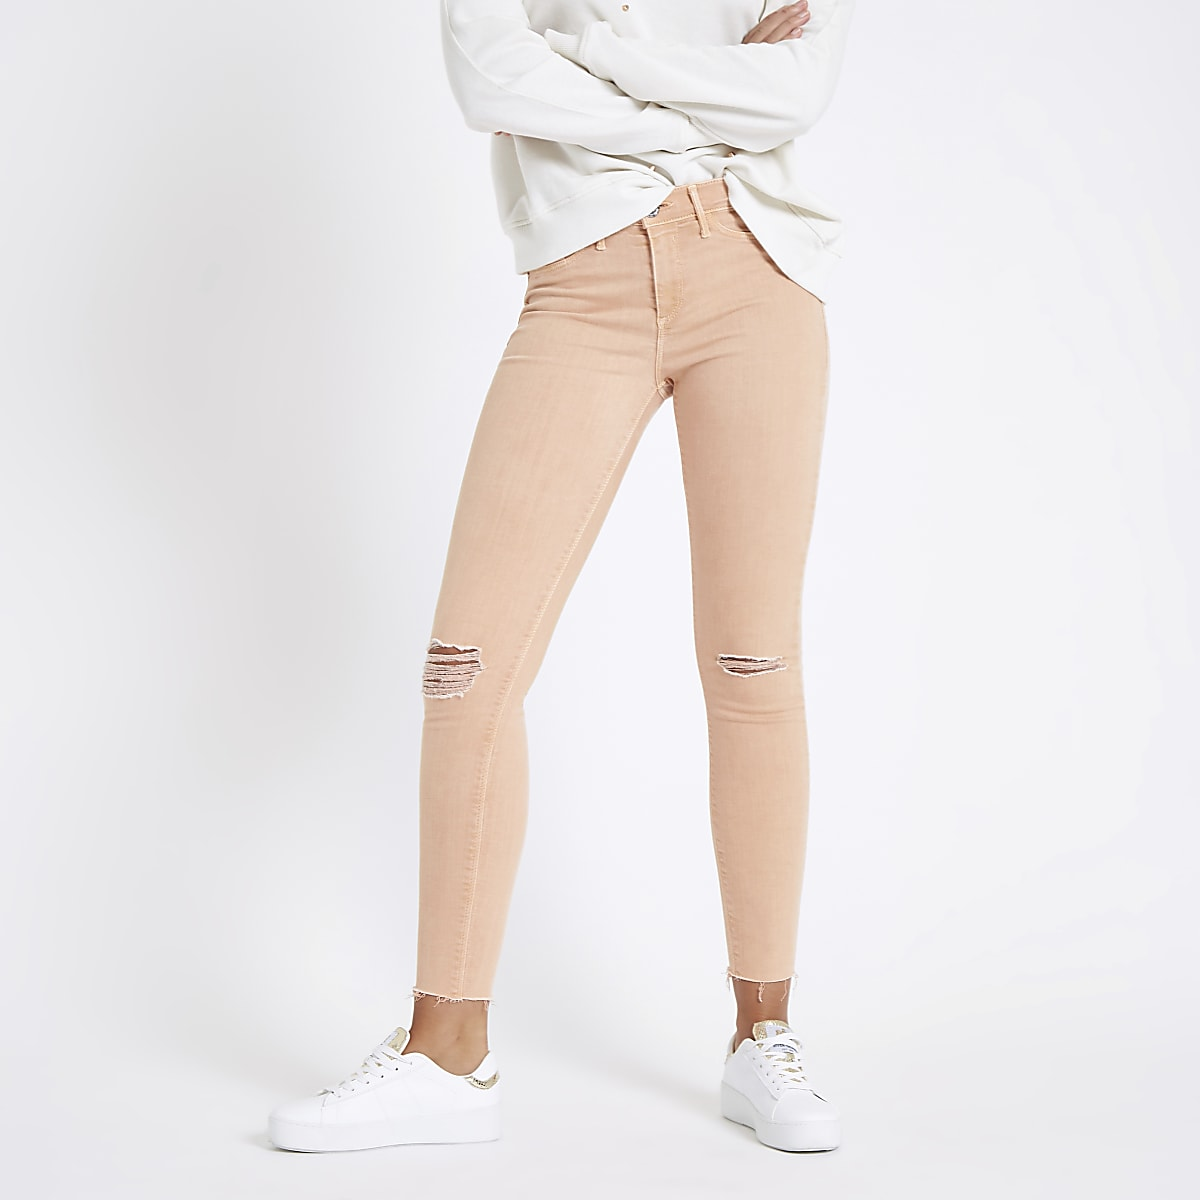 Orange Molly ripped mid rise jeggings